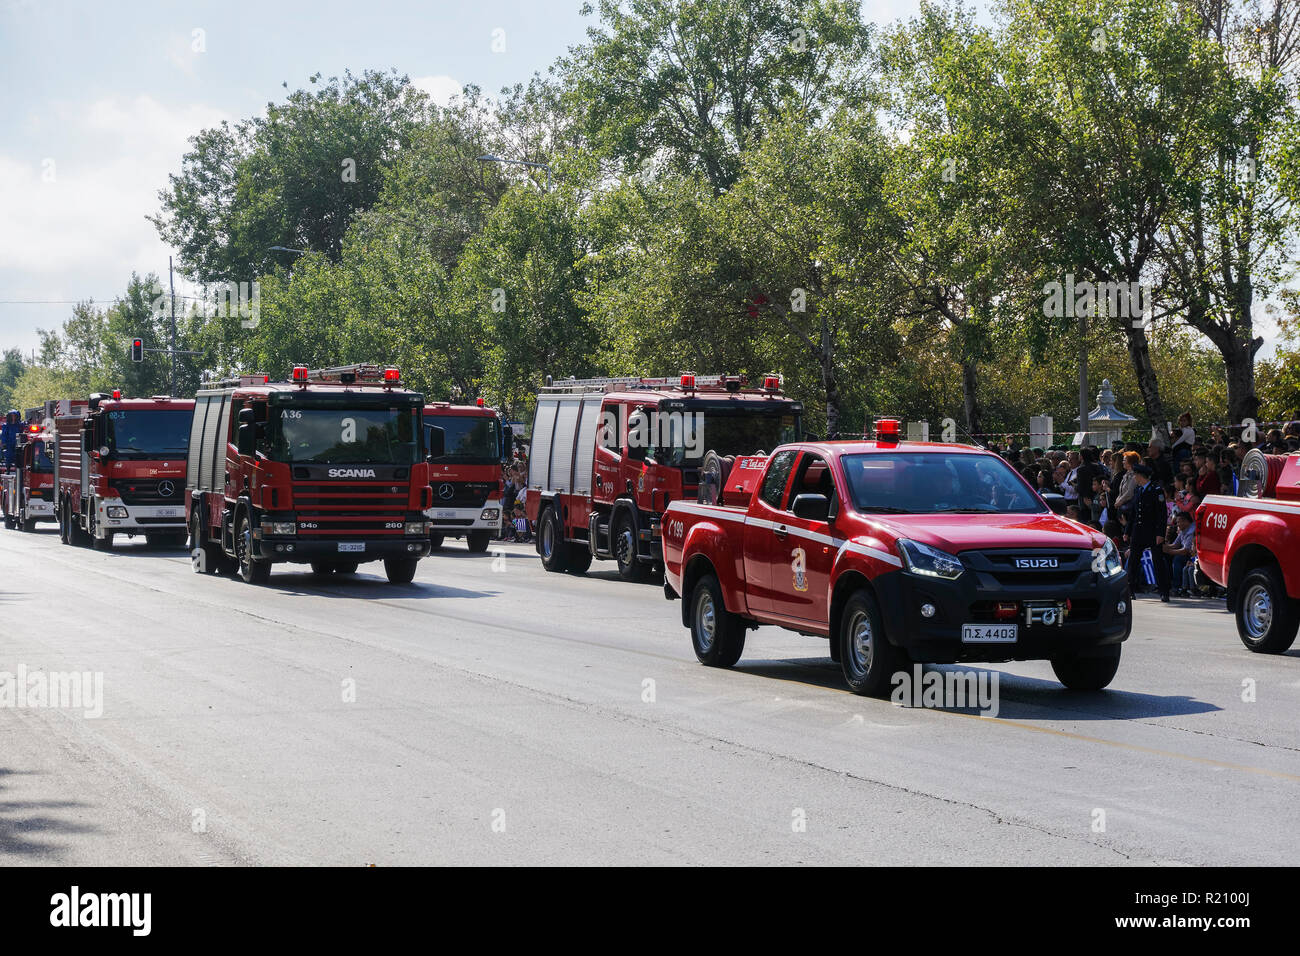 Greek Fire Service trucks during Oxi Day parade in Thessaloniki, Greece. Hellenic Fire Brigade vehicles with Greek firefighters in uniform. - Stock Image